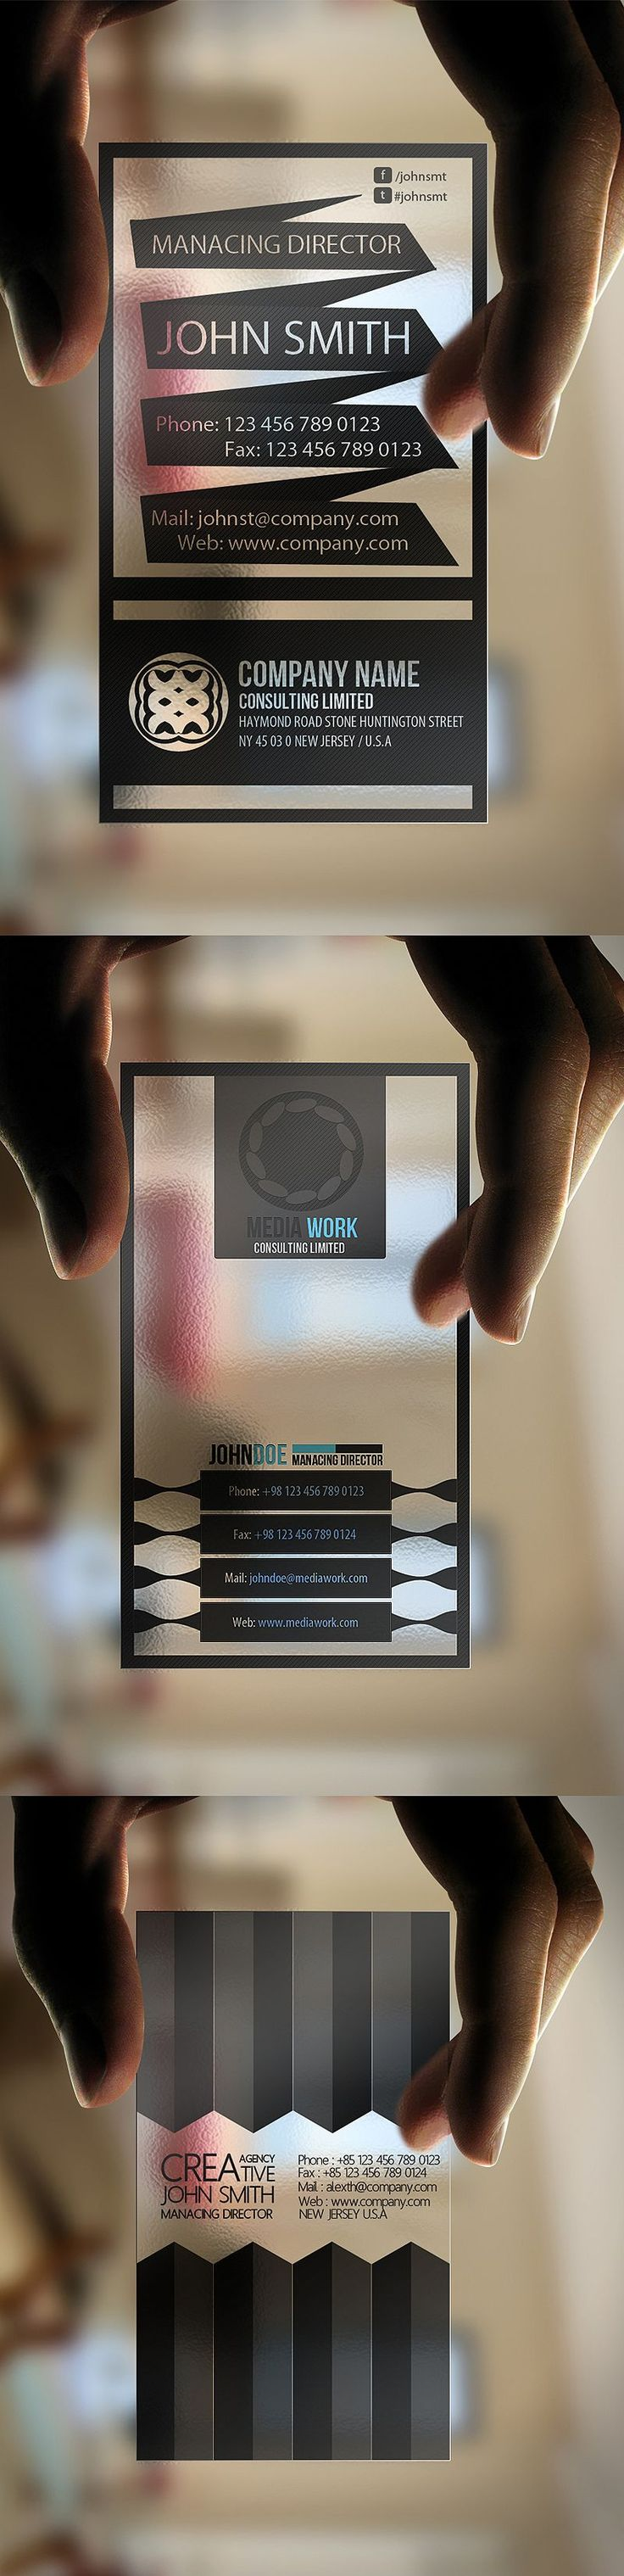 Best 25+ Transparent business cards ideas on Pinterest | Clear ...